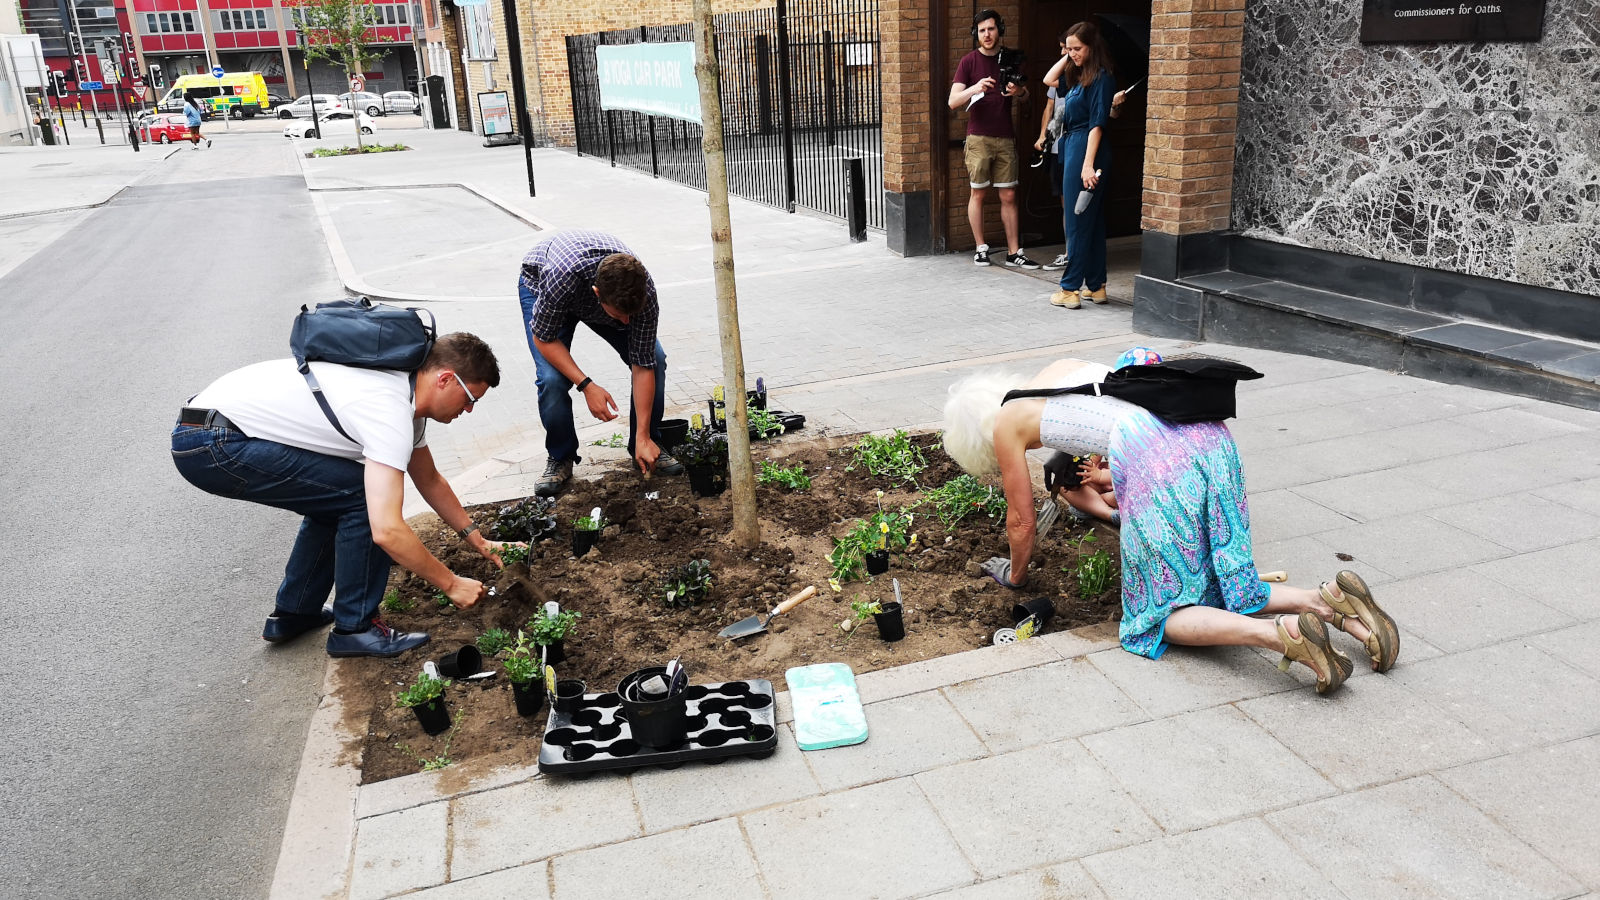 Leicester Greyfriars Heritage Initiative - Events - Greening Greyfriars